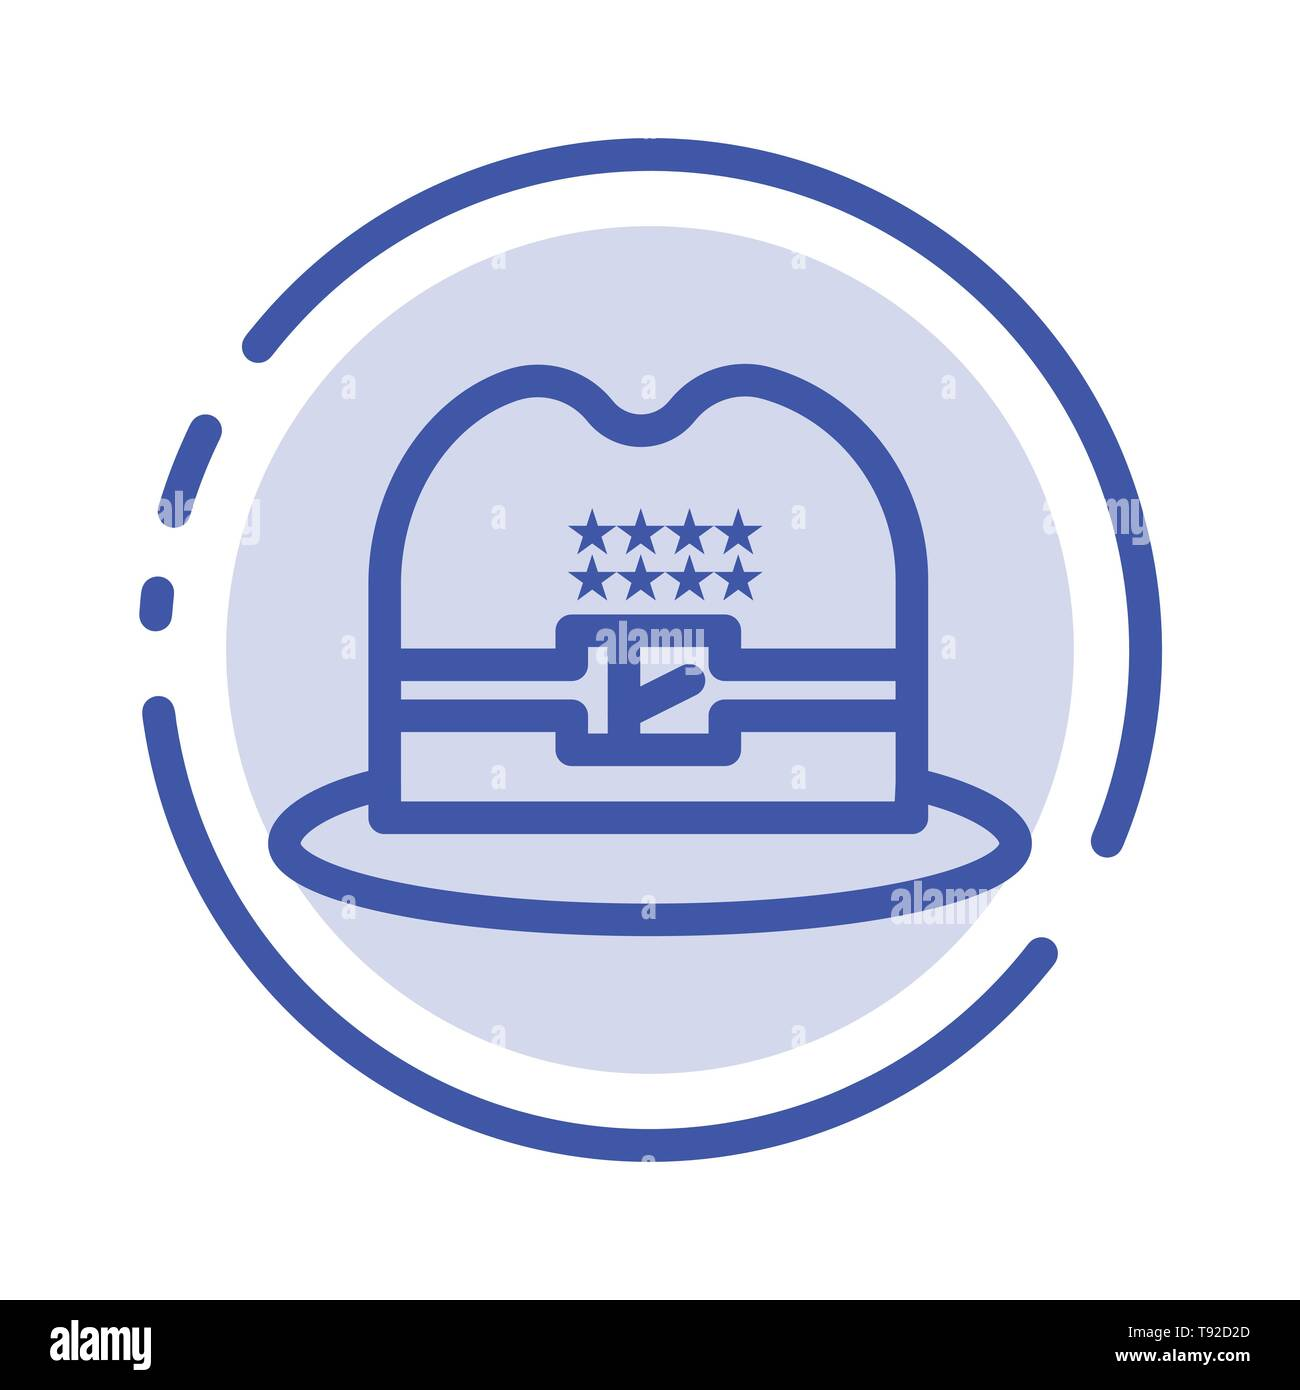 Hat, Cap, American Blue Dotted Line Line Icon - Stock Image